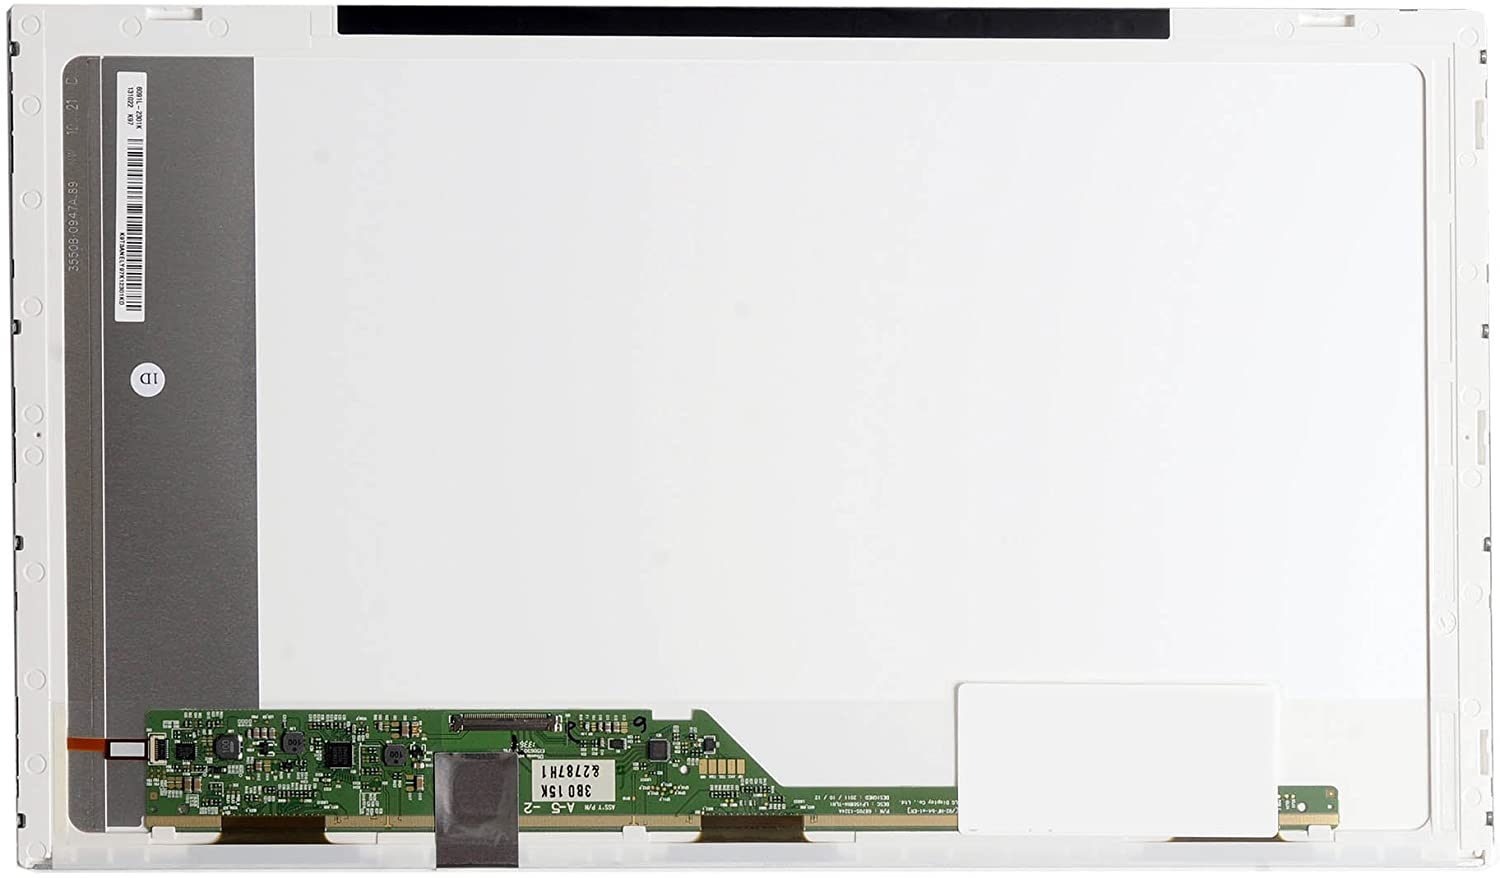 "HP Pavilion G6 New 15.6"" LED LCD Hd Display Fits G6-1B49Wm, G6-1B59Wm, G6-2249Wm, G6-2269Wm, G6-1C00, G6-1A00 Matte"